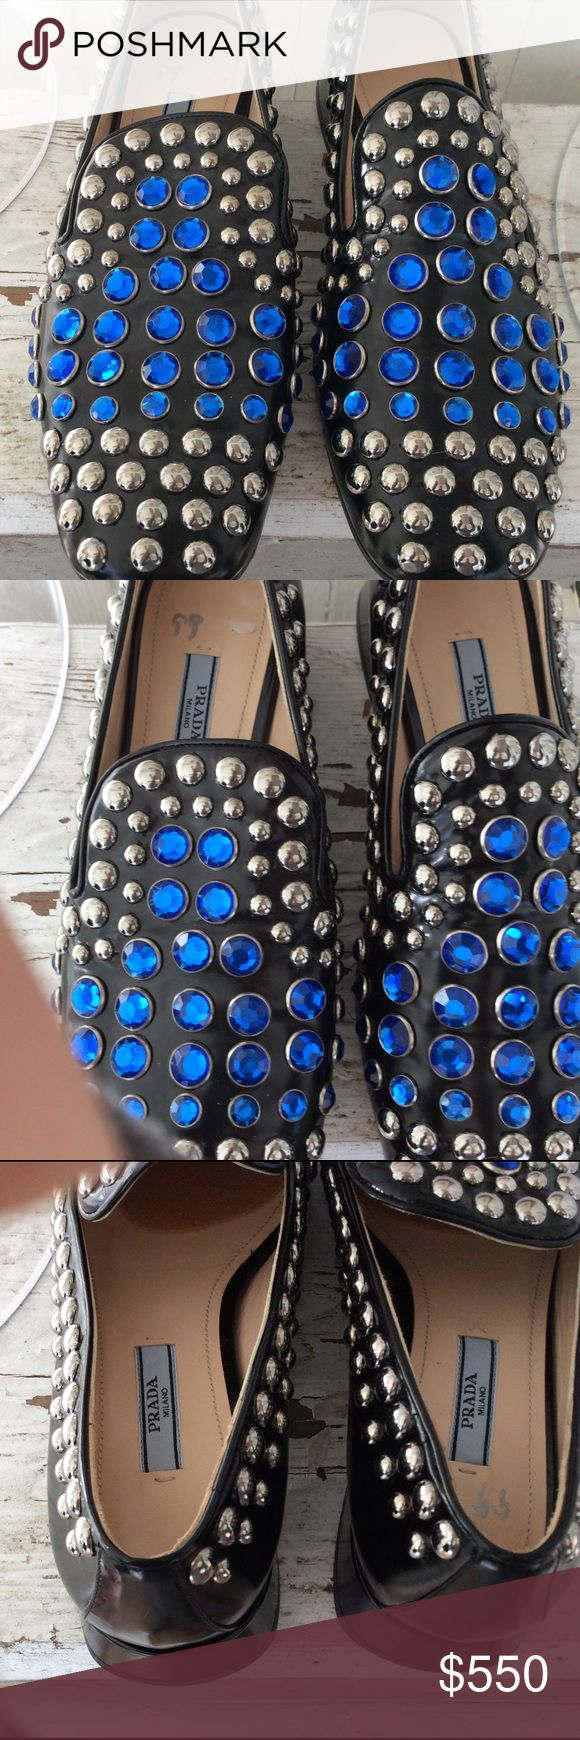 Prada Spazzolato Nero blue studded loafer 37 Guaranteed 100% Authentic Brand: Prada  Style: Studded Leather Loafer Colour: Blue /Silver-tone studs Size: Prada 37 US 7 (Medium Width) Bright studs punctuate a sleek loafer crafted from smooth leather. Leather upper, lining and sole. Made in Italy. Retail $990.00 Sold out everywhere. Barney's New York Prada Shoes Flats & Loafers